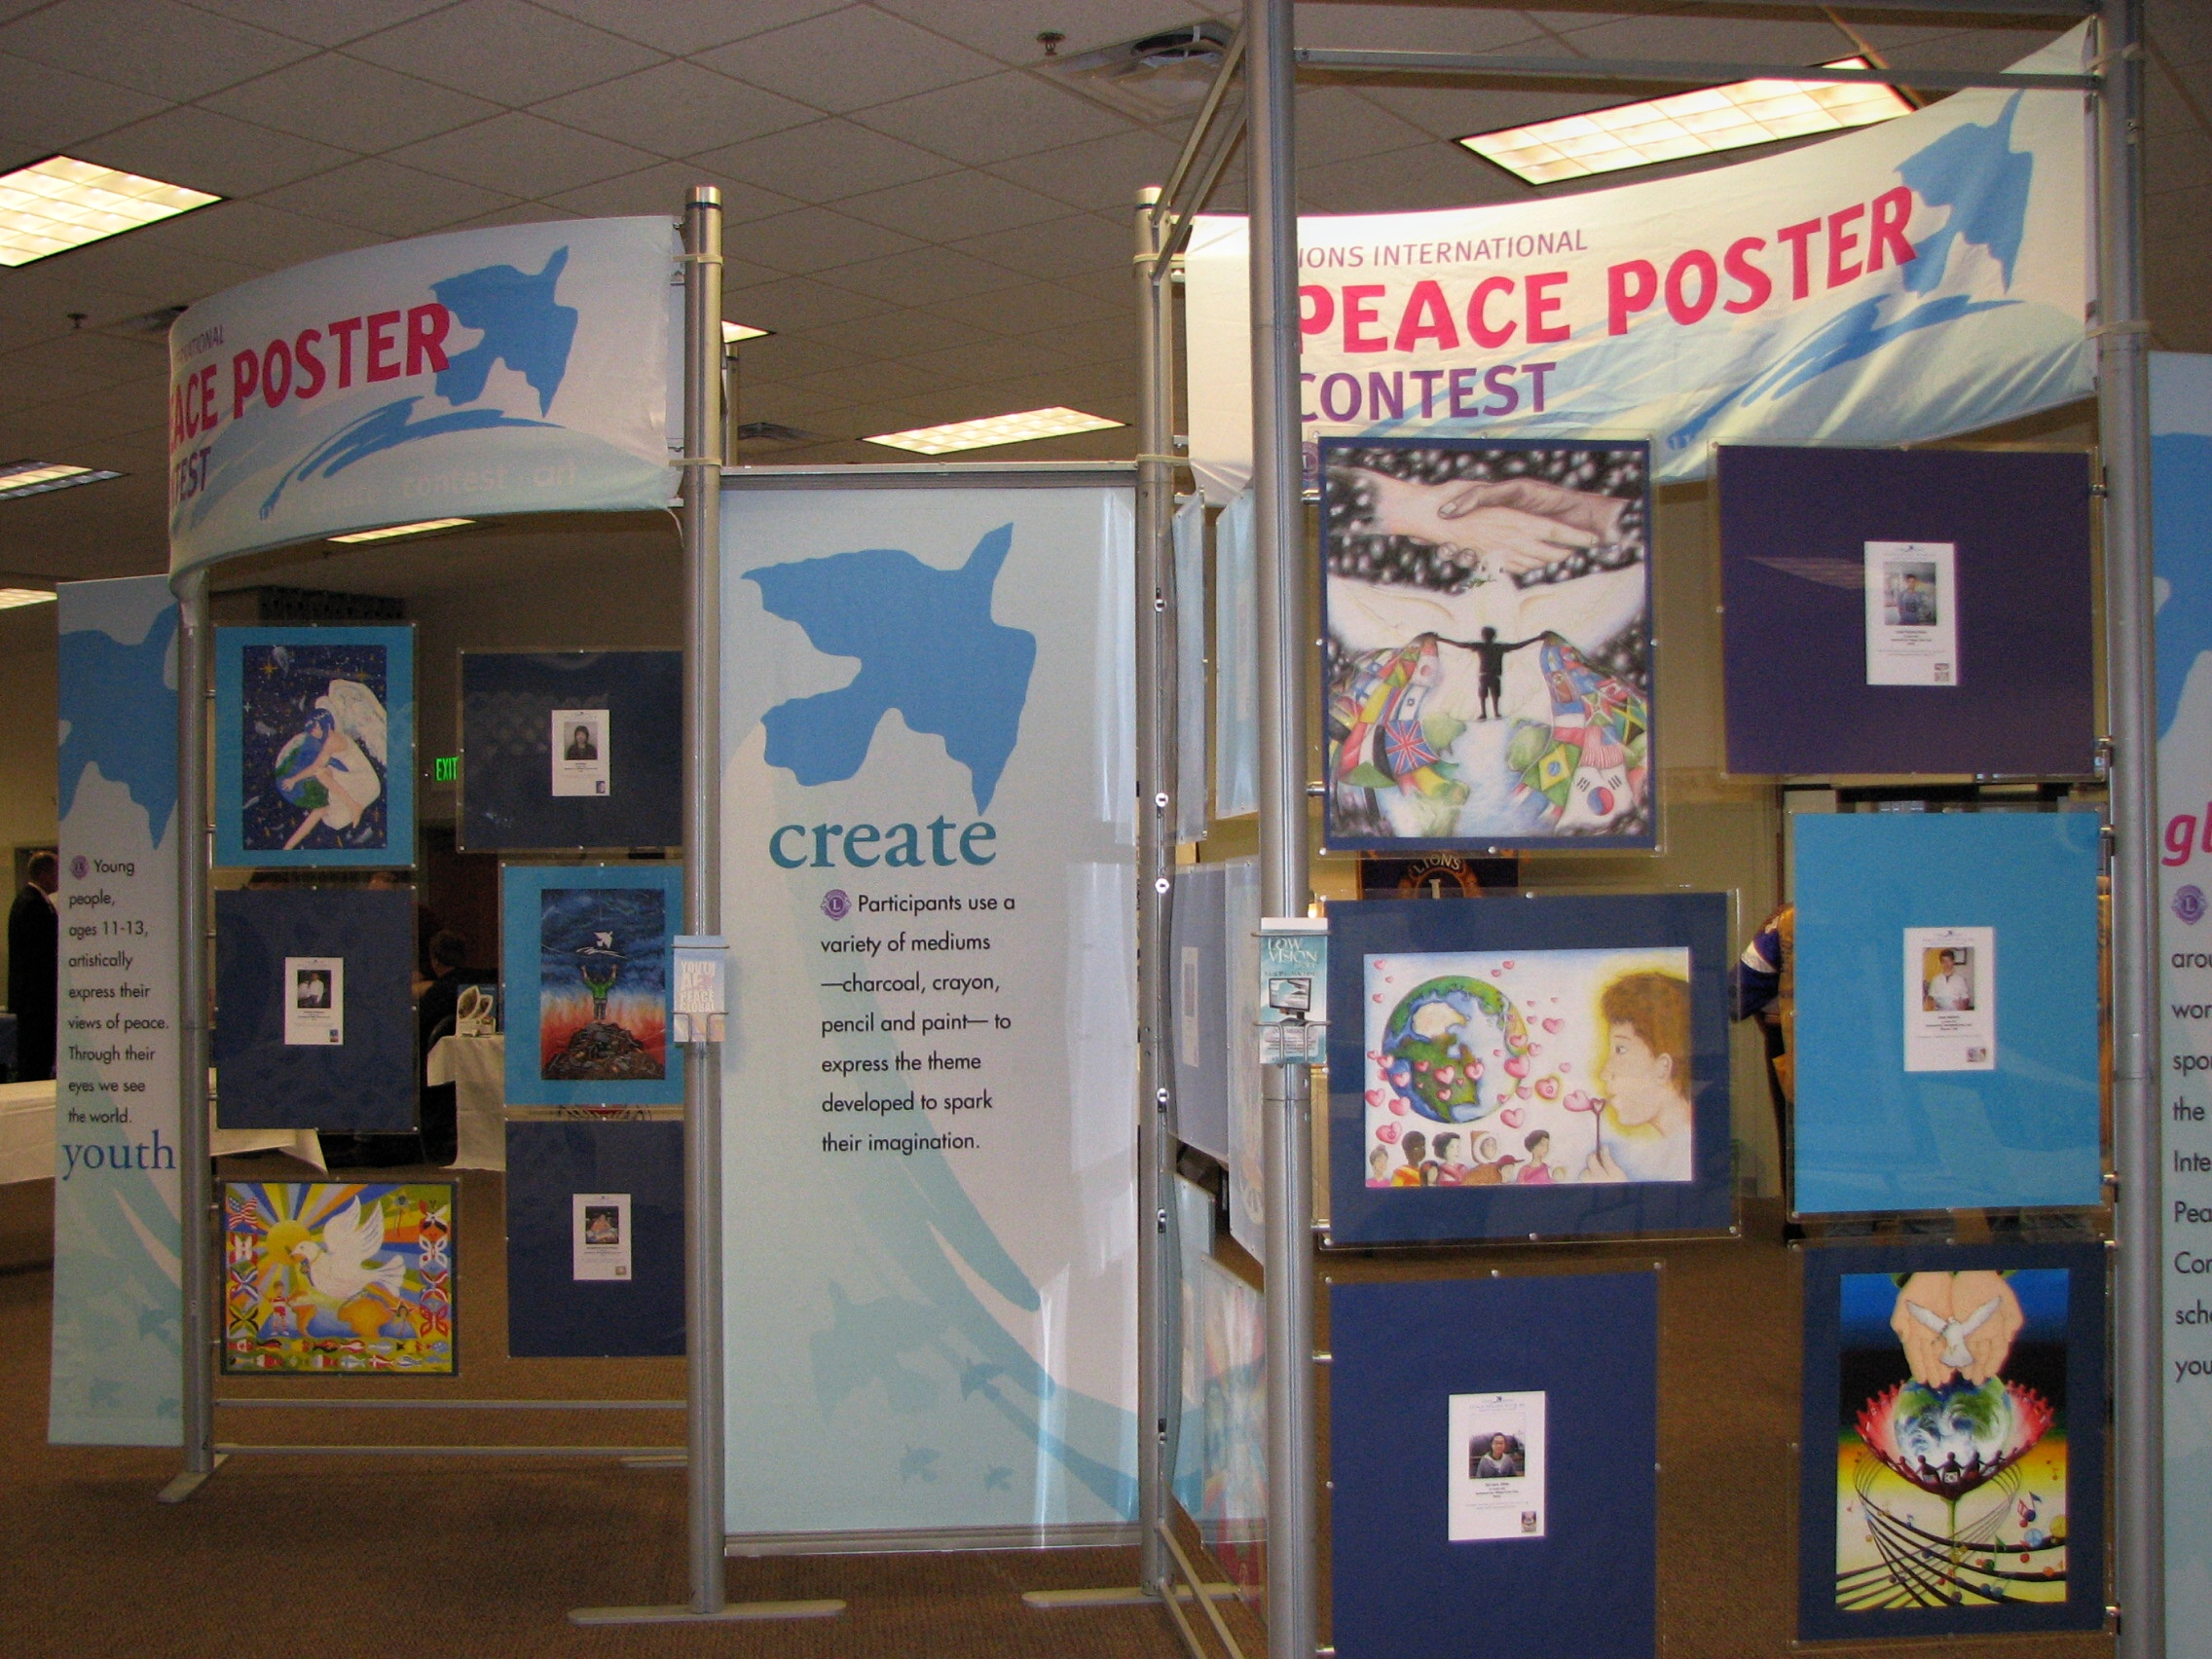 Lions International Peace Poster Contest Exhibit